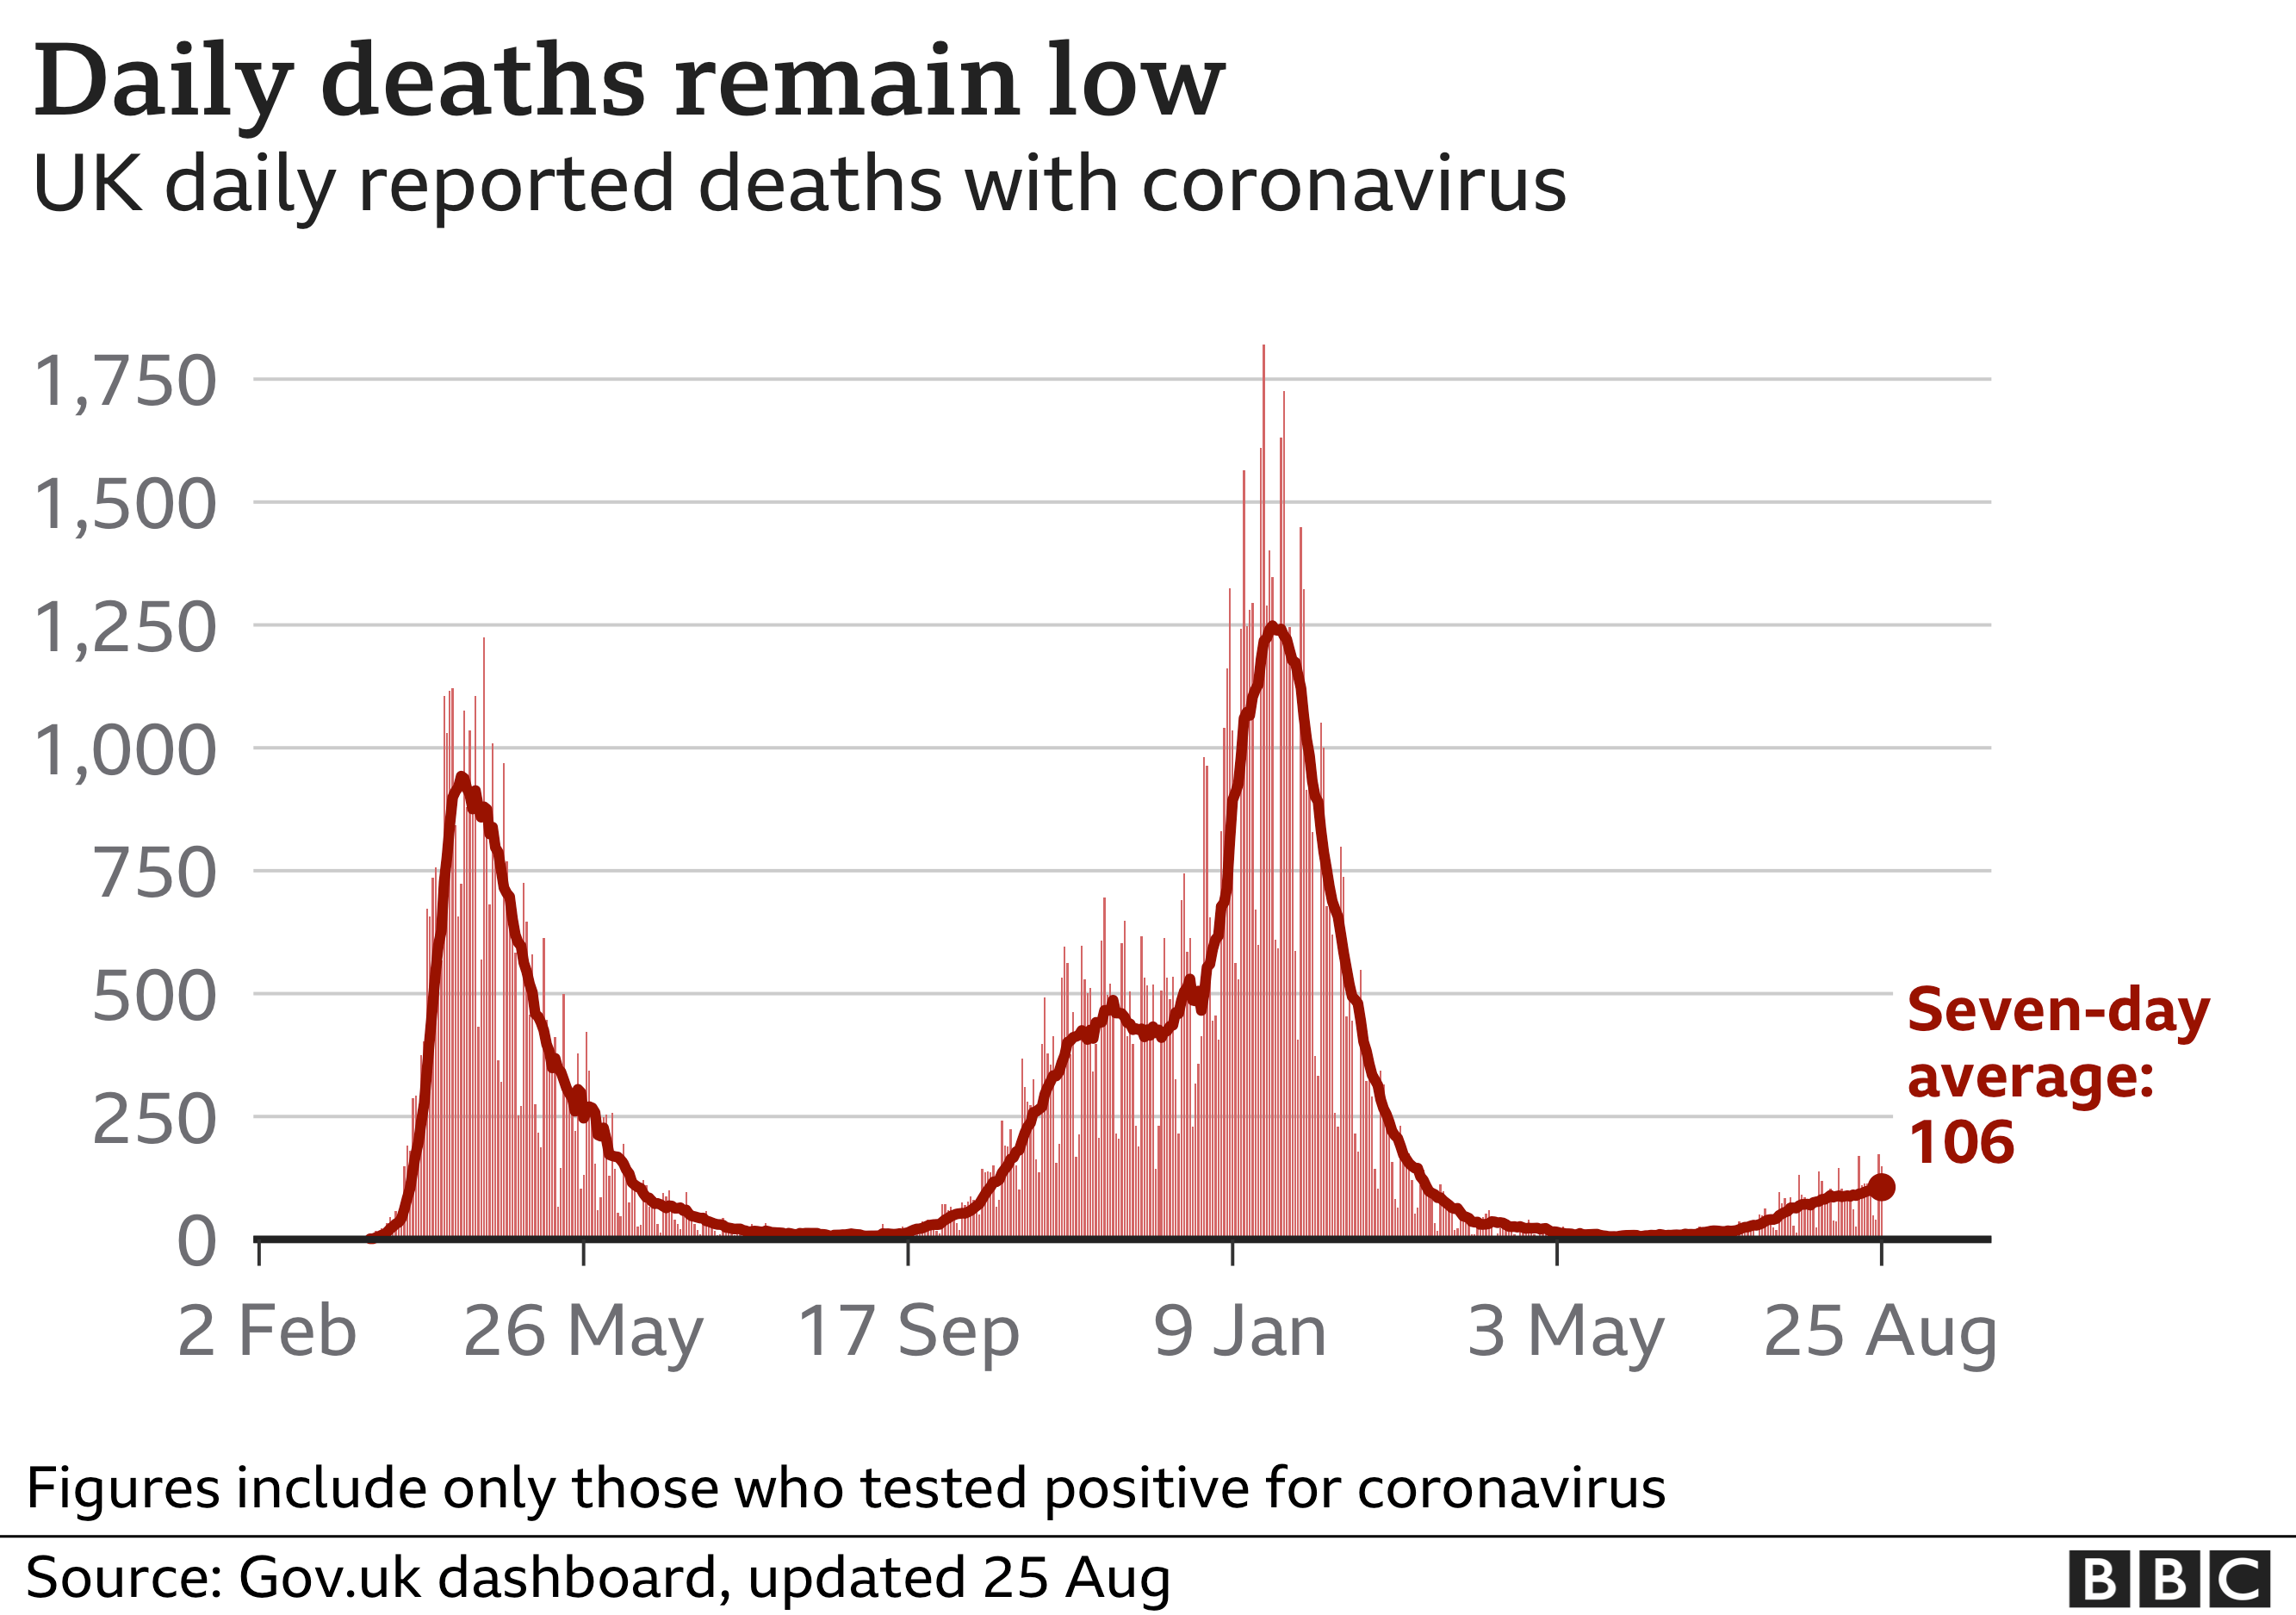 Chart showing that the number of Covid deaths remains low